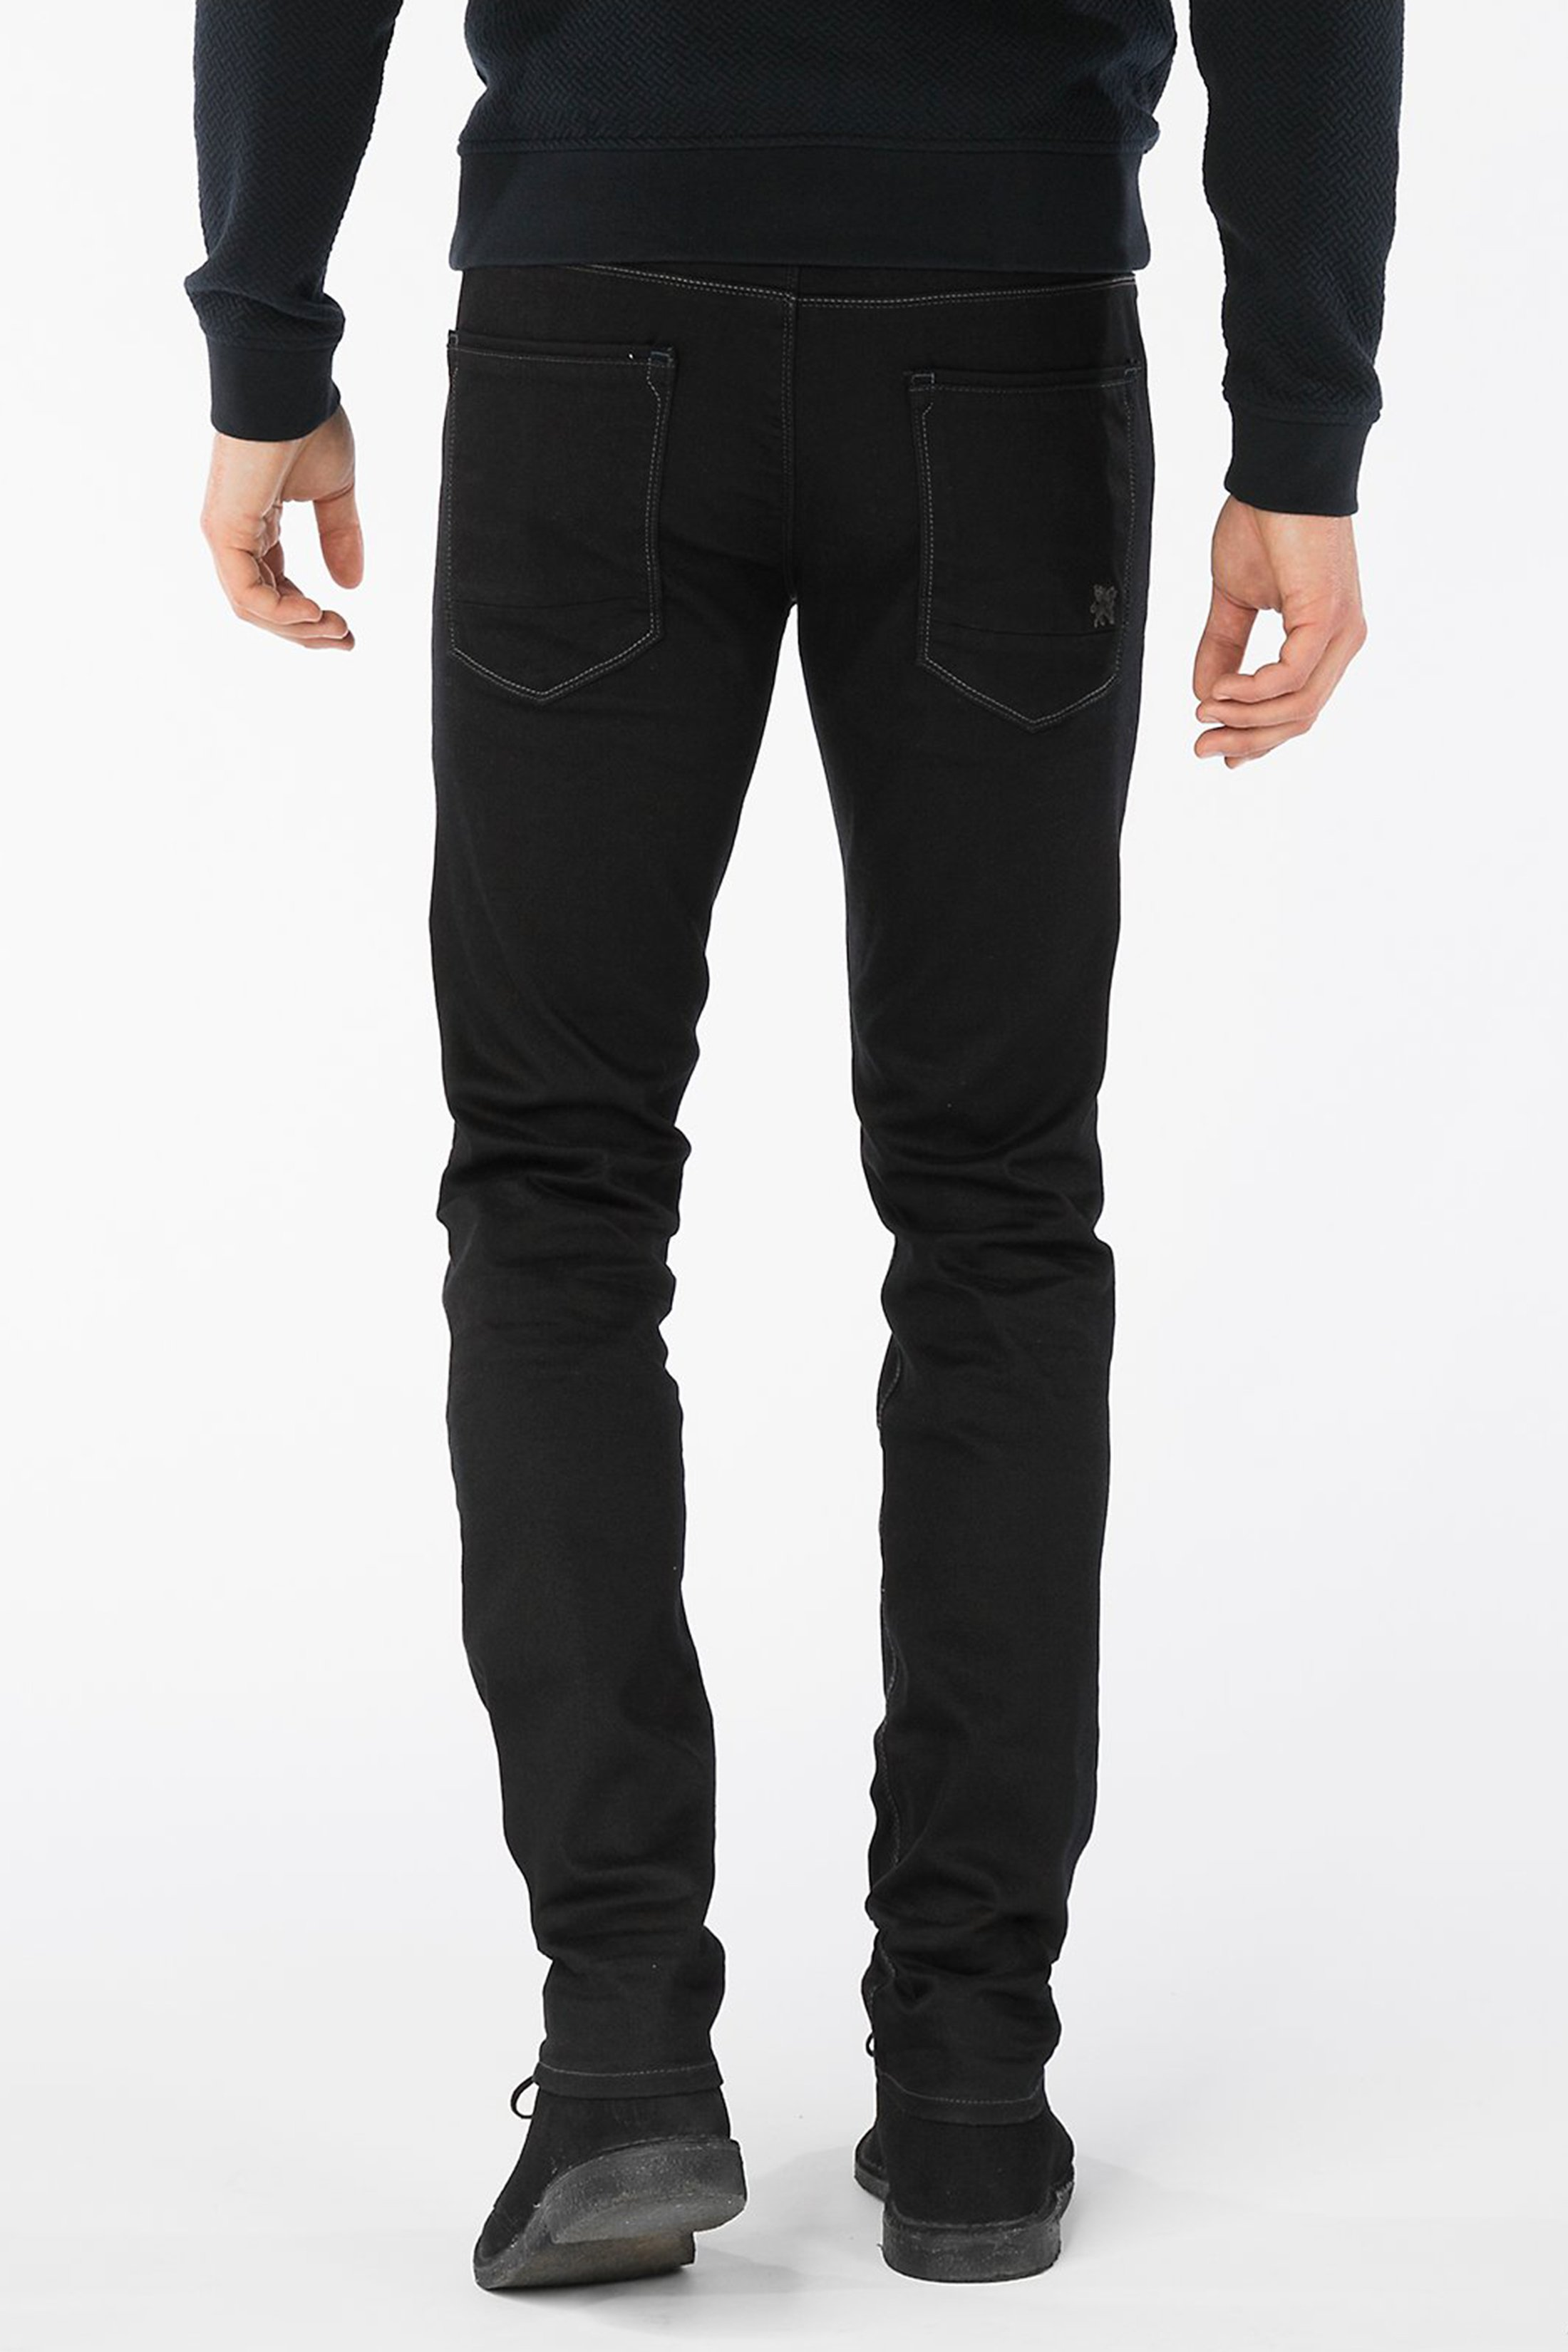 Vanguard V7 Slim Jeans Stretch DCD foto 6